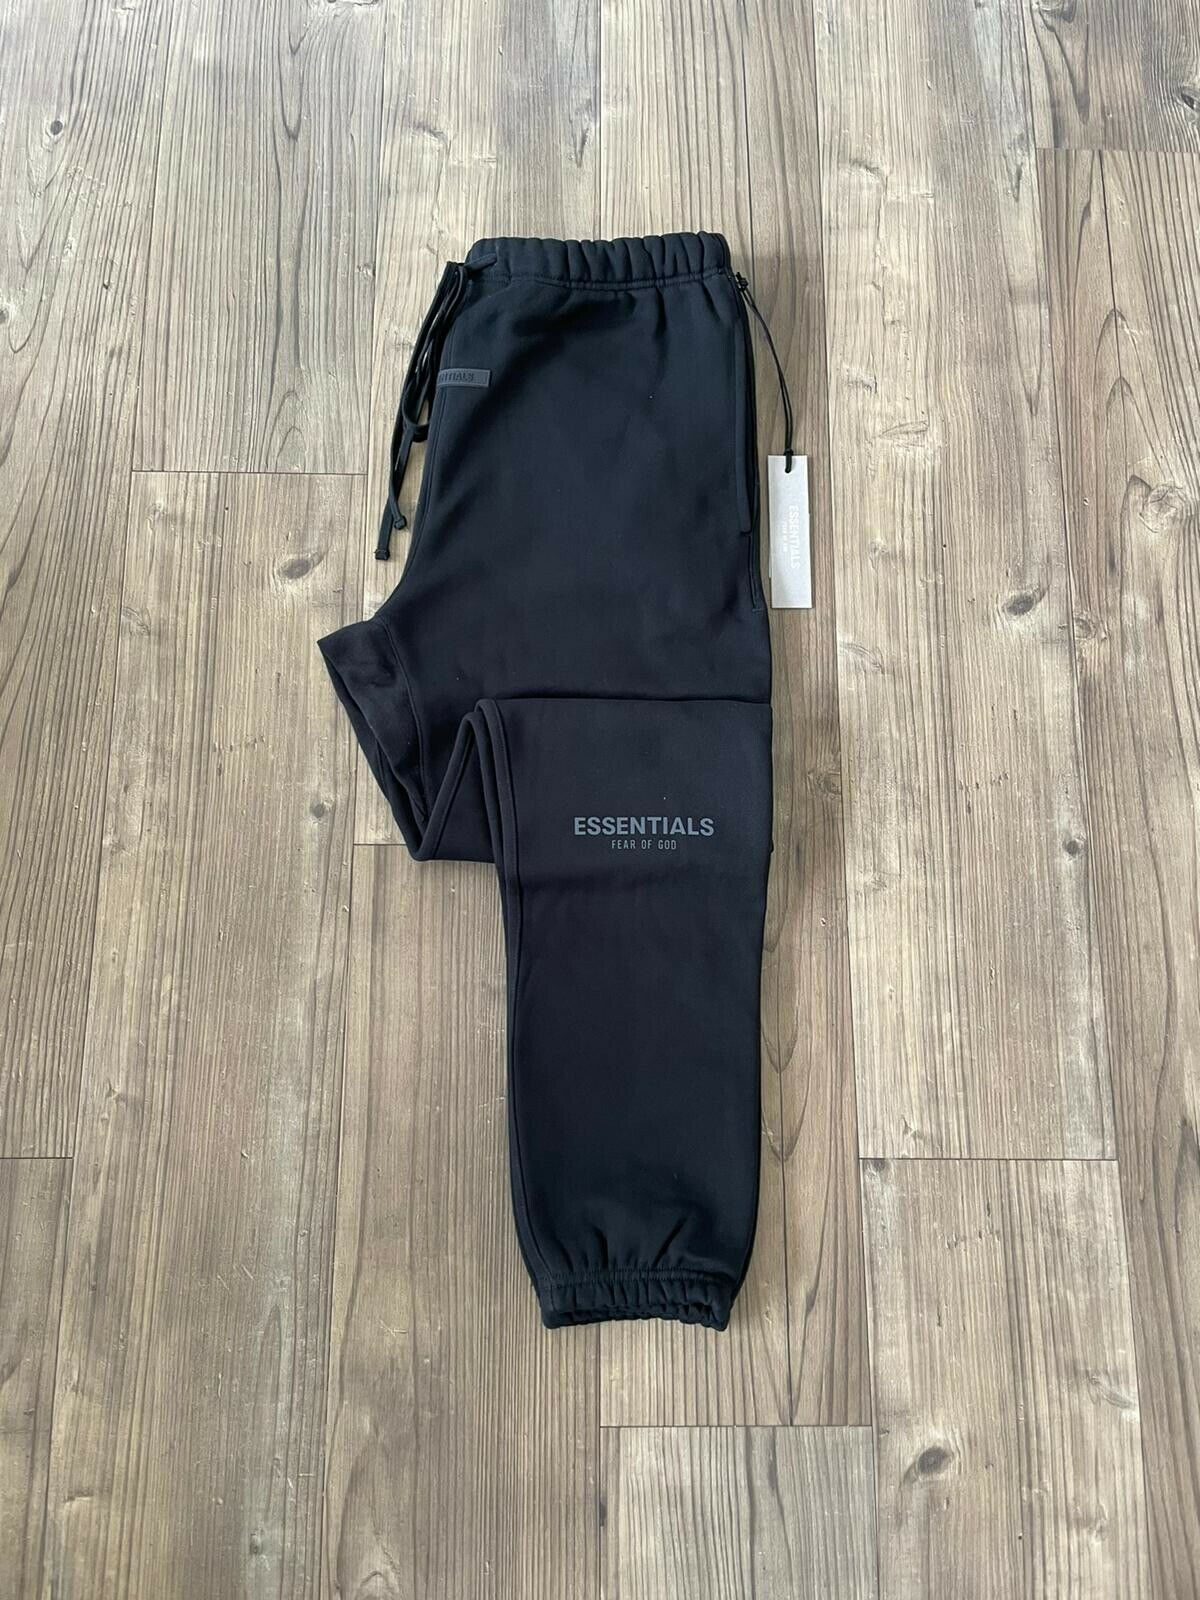 100% Authentic Fear Of God Essentials Joggers - Black - Size M